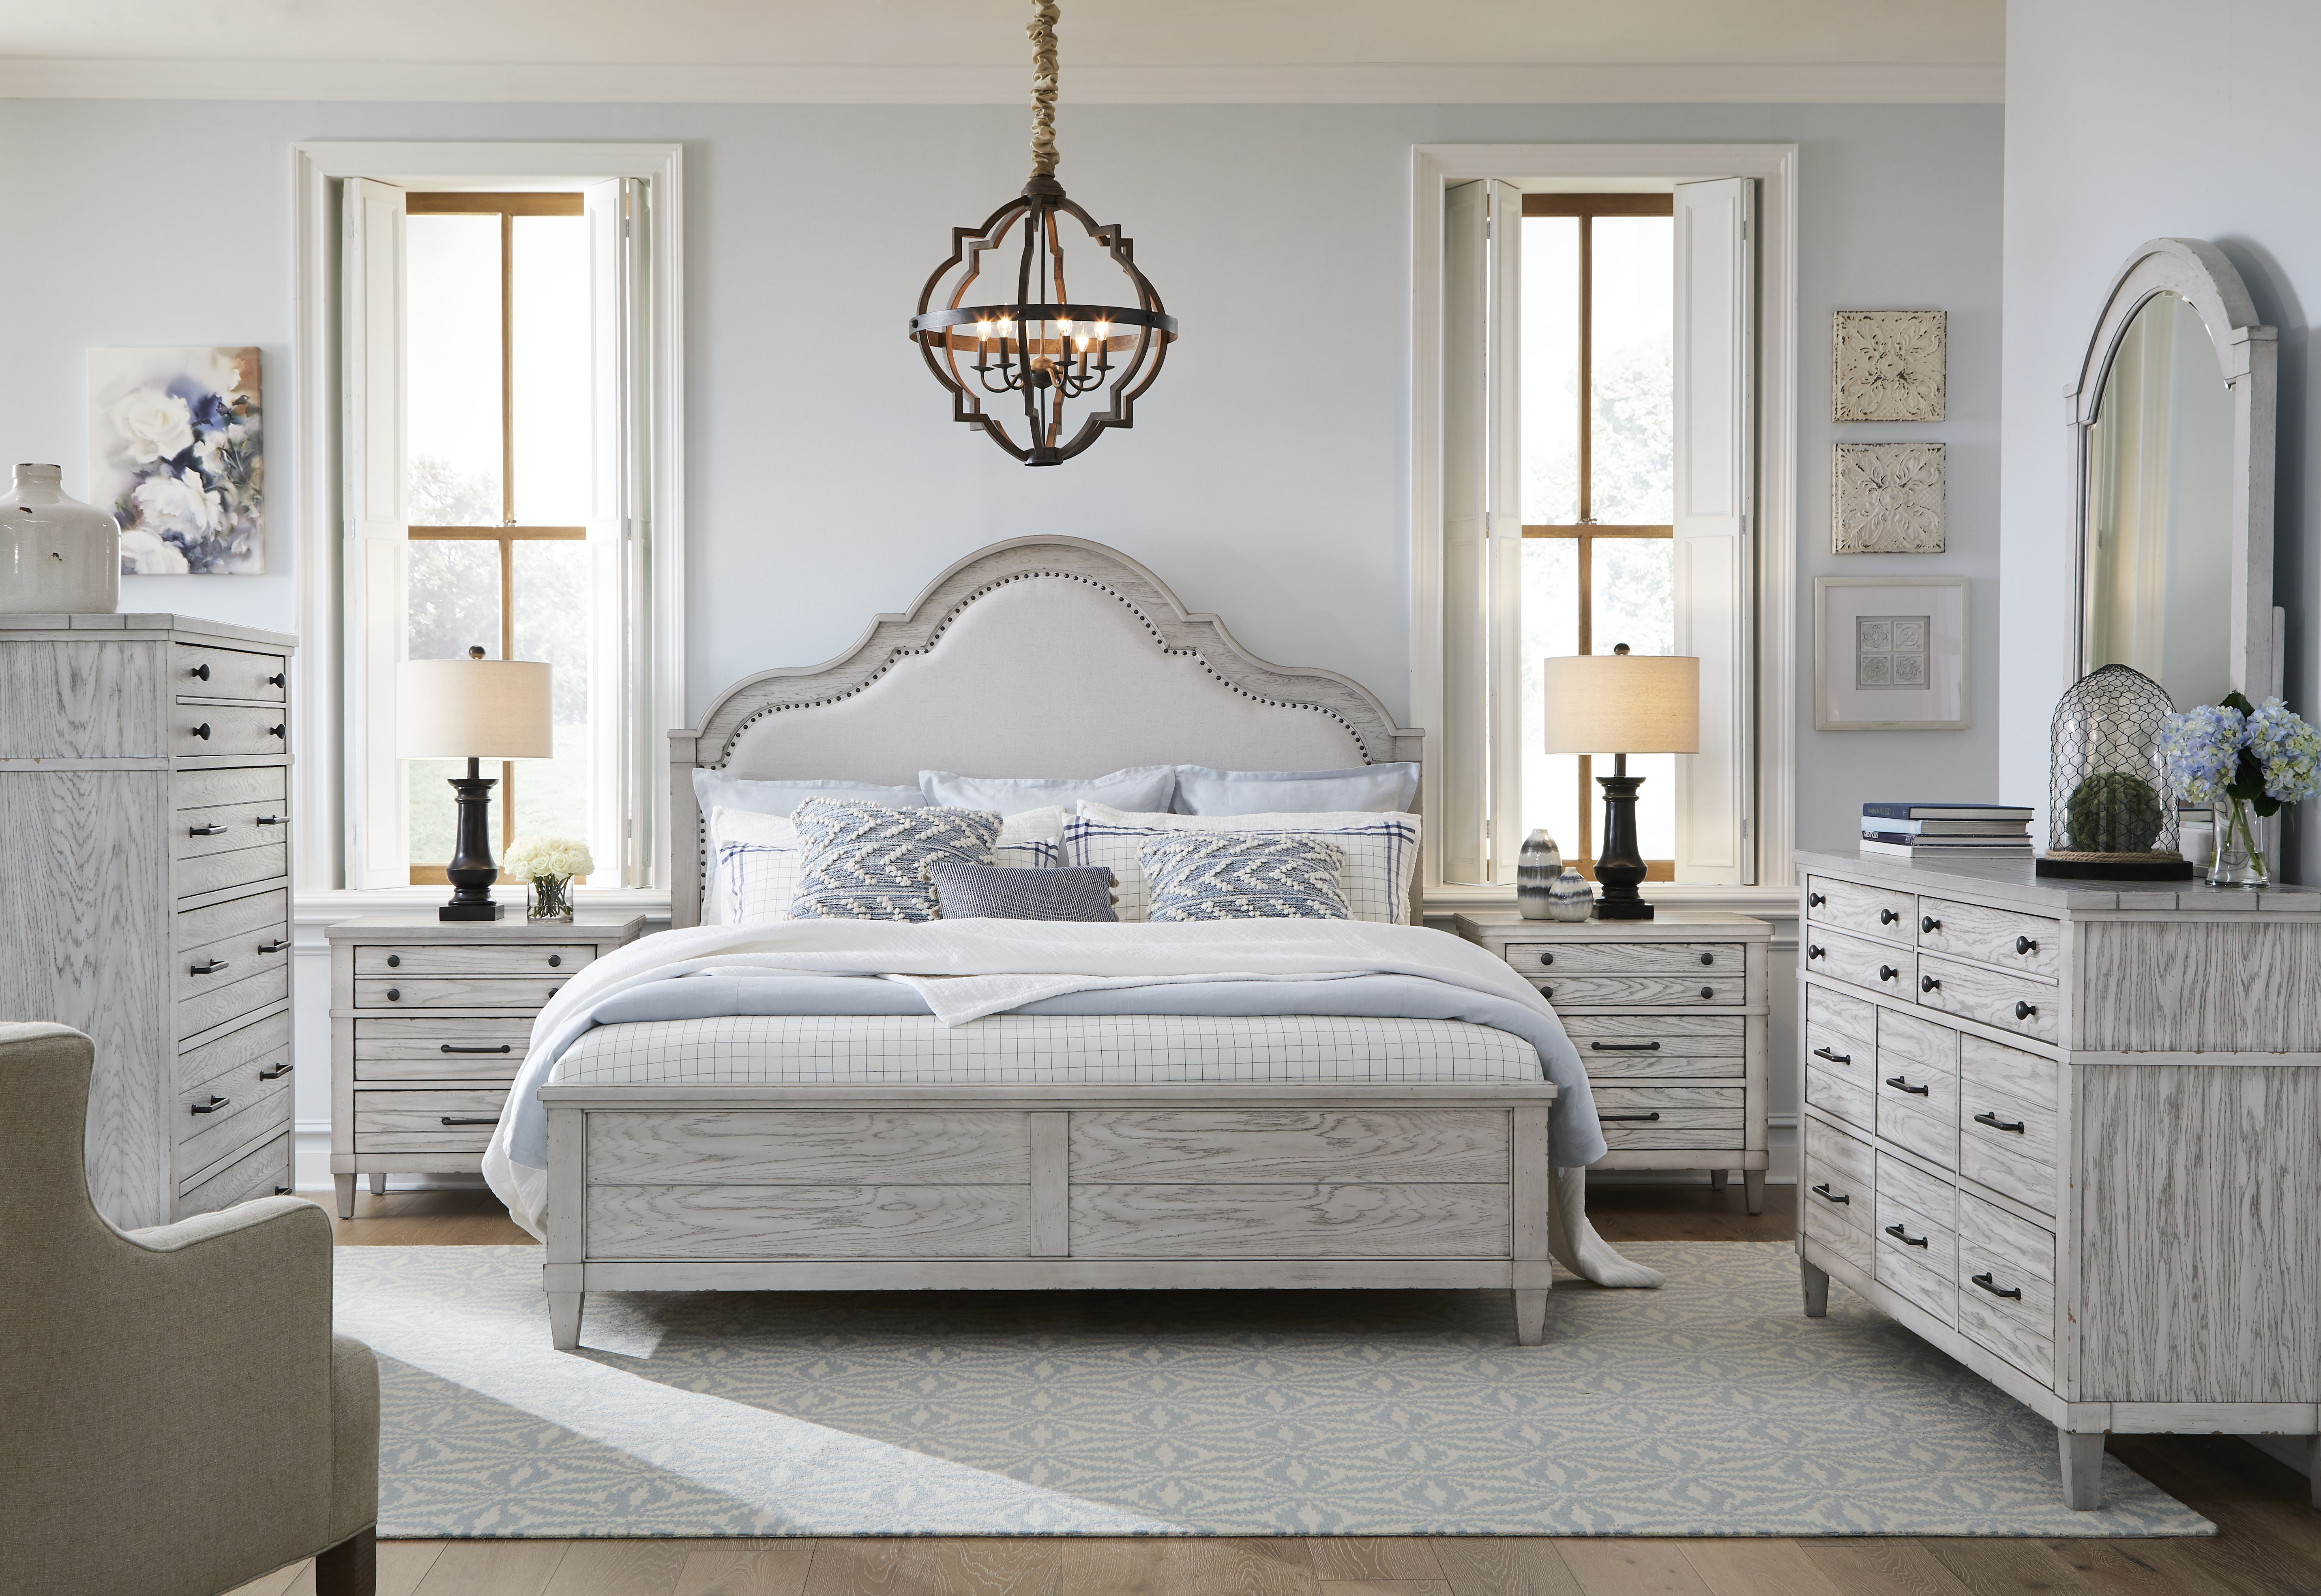 Belhaven Bedroom Weathered White Legacy Classic Furniture Belhaven Legacyclassic Coas In 2020 Bedroom Set Unique Bedroom Furniture Bedroom Furniture Inspiration